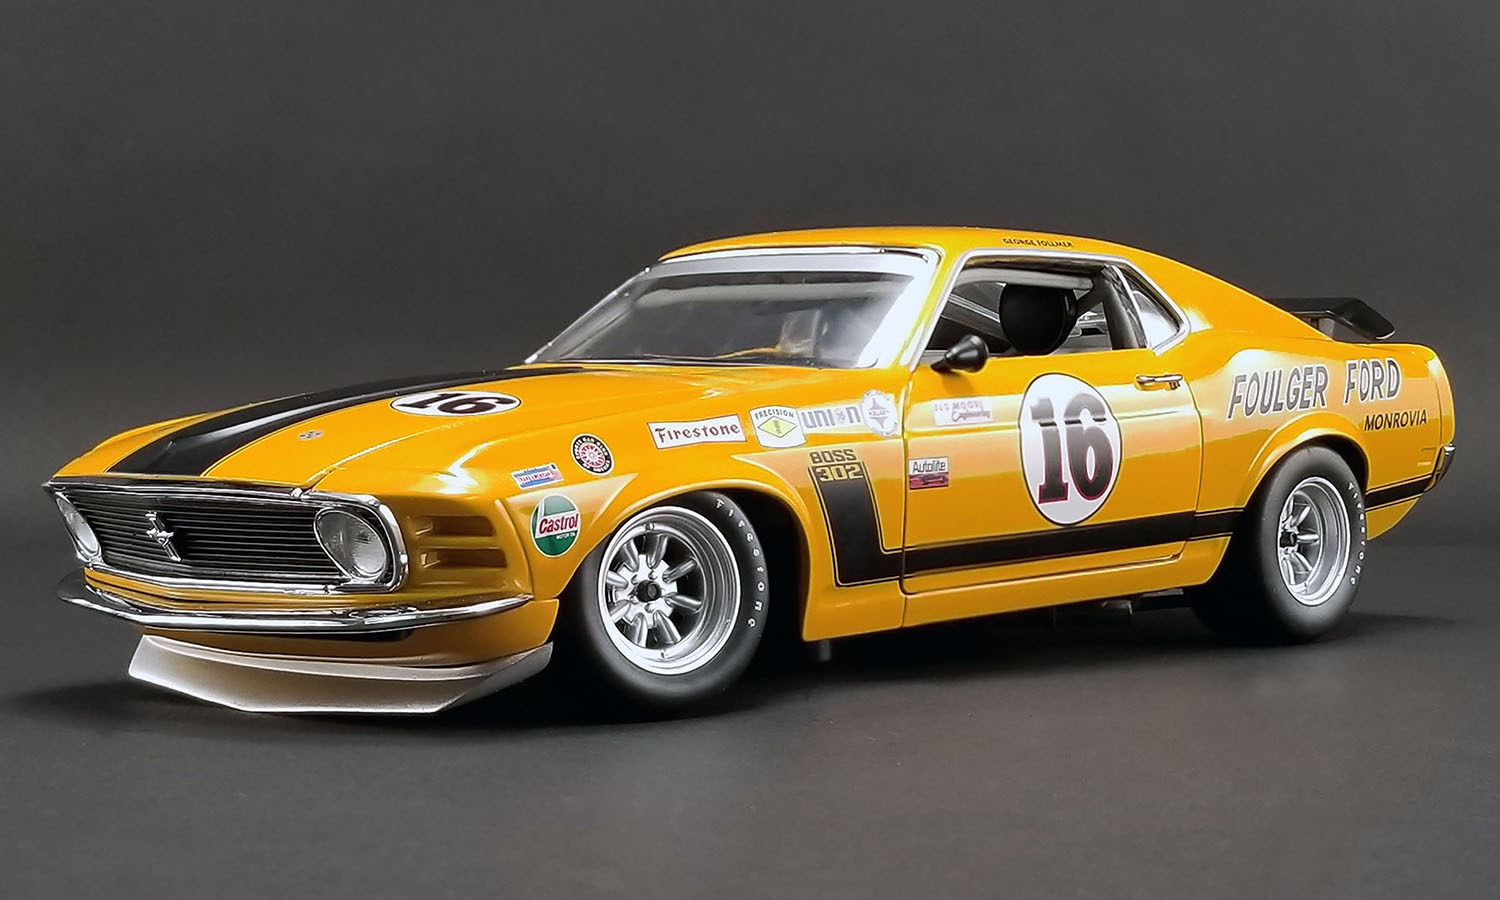 ACME 1/18 ミニカー ダイキャストモデル 1970年モデル フォード マスタング BOSS 302 Trans AM No.16 Foulger Ford#16 1970 FORD BOSS 302 TRANS AM MUSTANG - FOULGER FORD 1:18 ACME